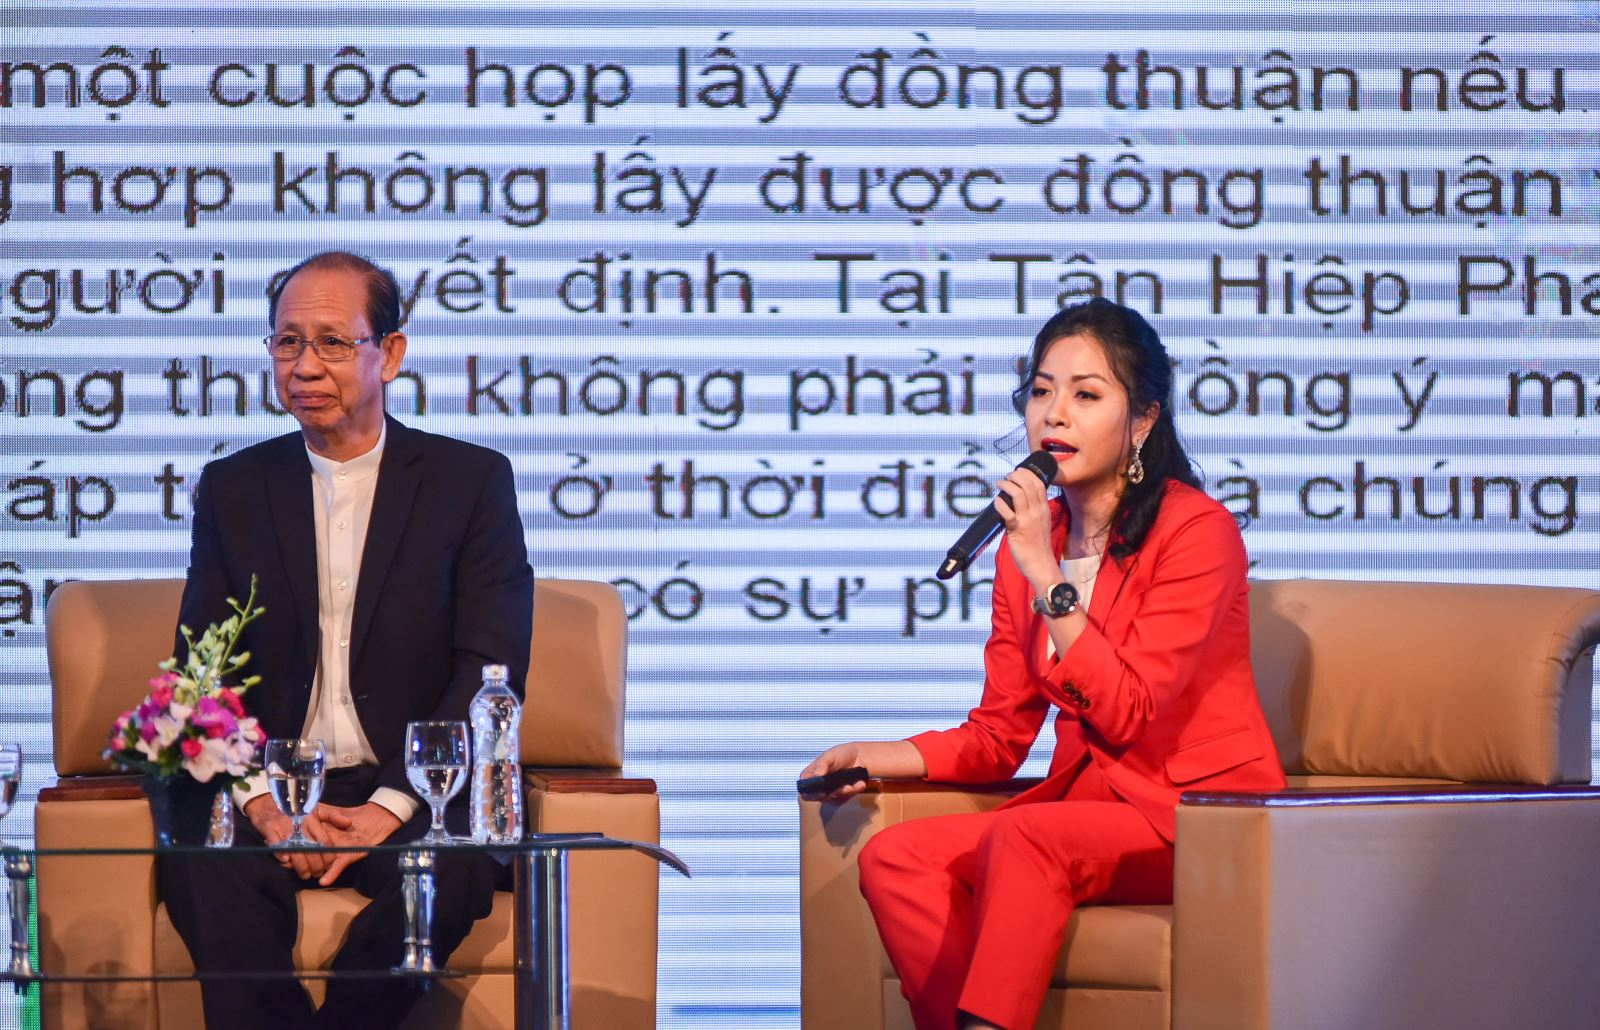 Phuong Uyen Tran: Creativity along with corporate culture help promote the growth of business post Covid-19